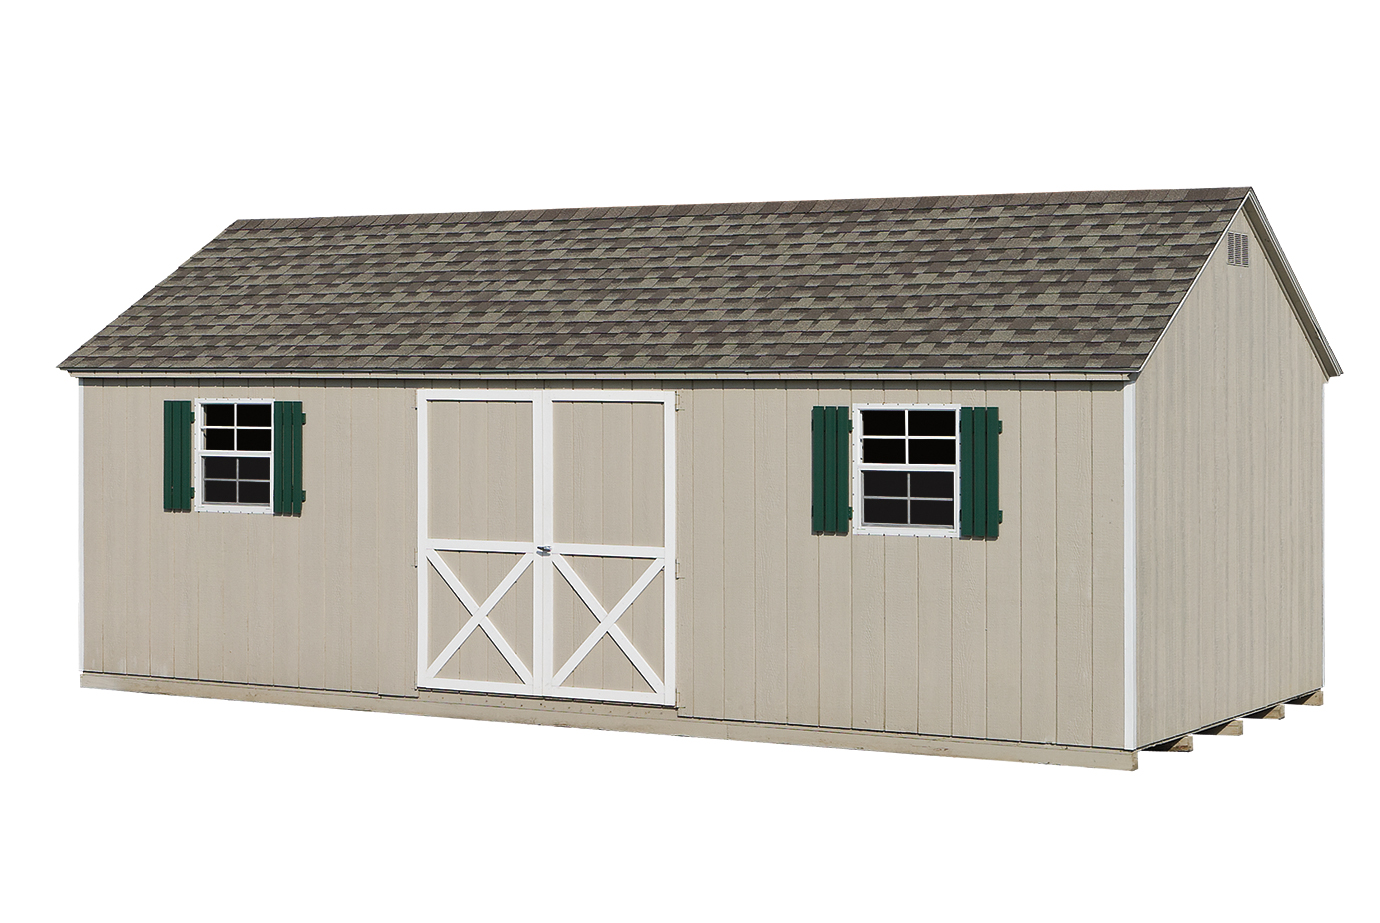 12 x24 a frame amish sheds from bob foote. Black Bedroom Furniture Sets. Home Design Ideas